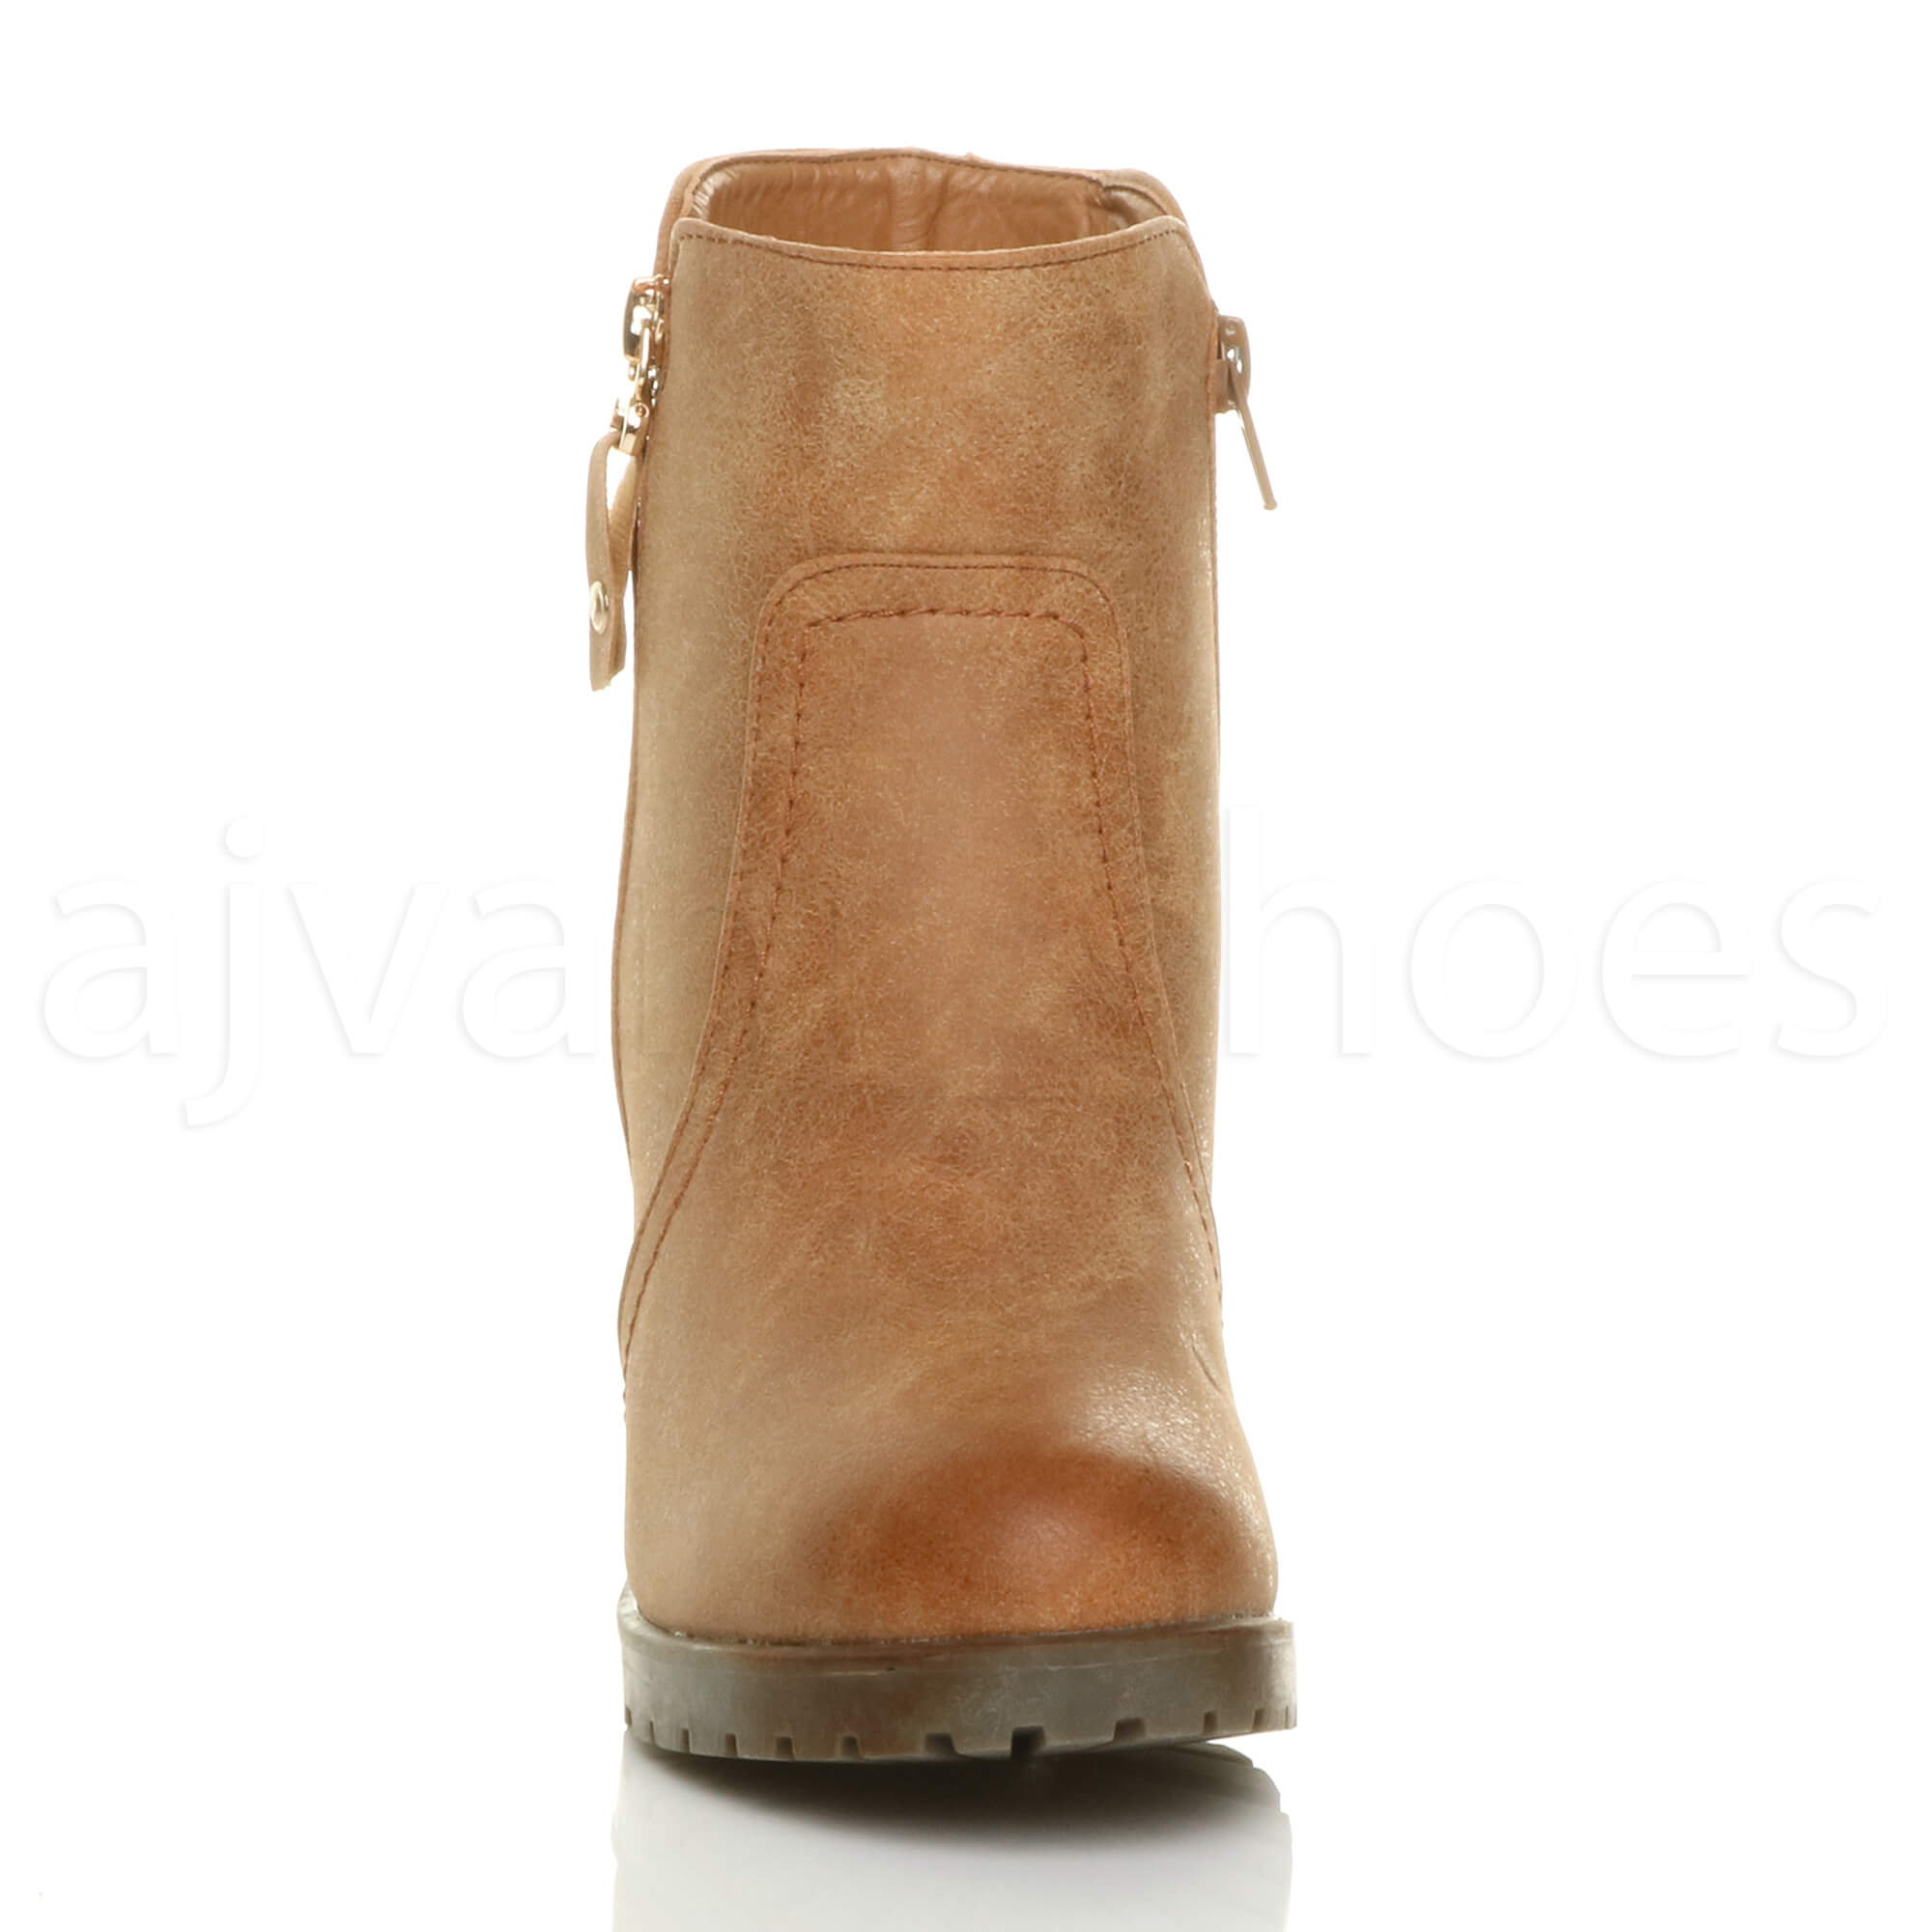 WOMENS-LADIES-HIGH-BLOCK-HEEL-GOLD-ZIP-DISTRESSED-BIKER-RIDING-ANKLE-BOOTS-SIZE